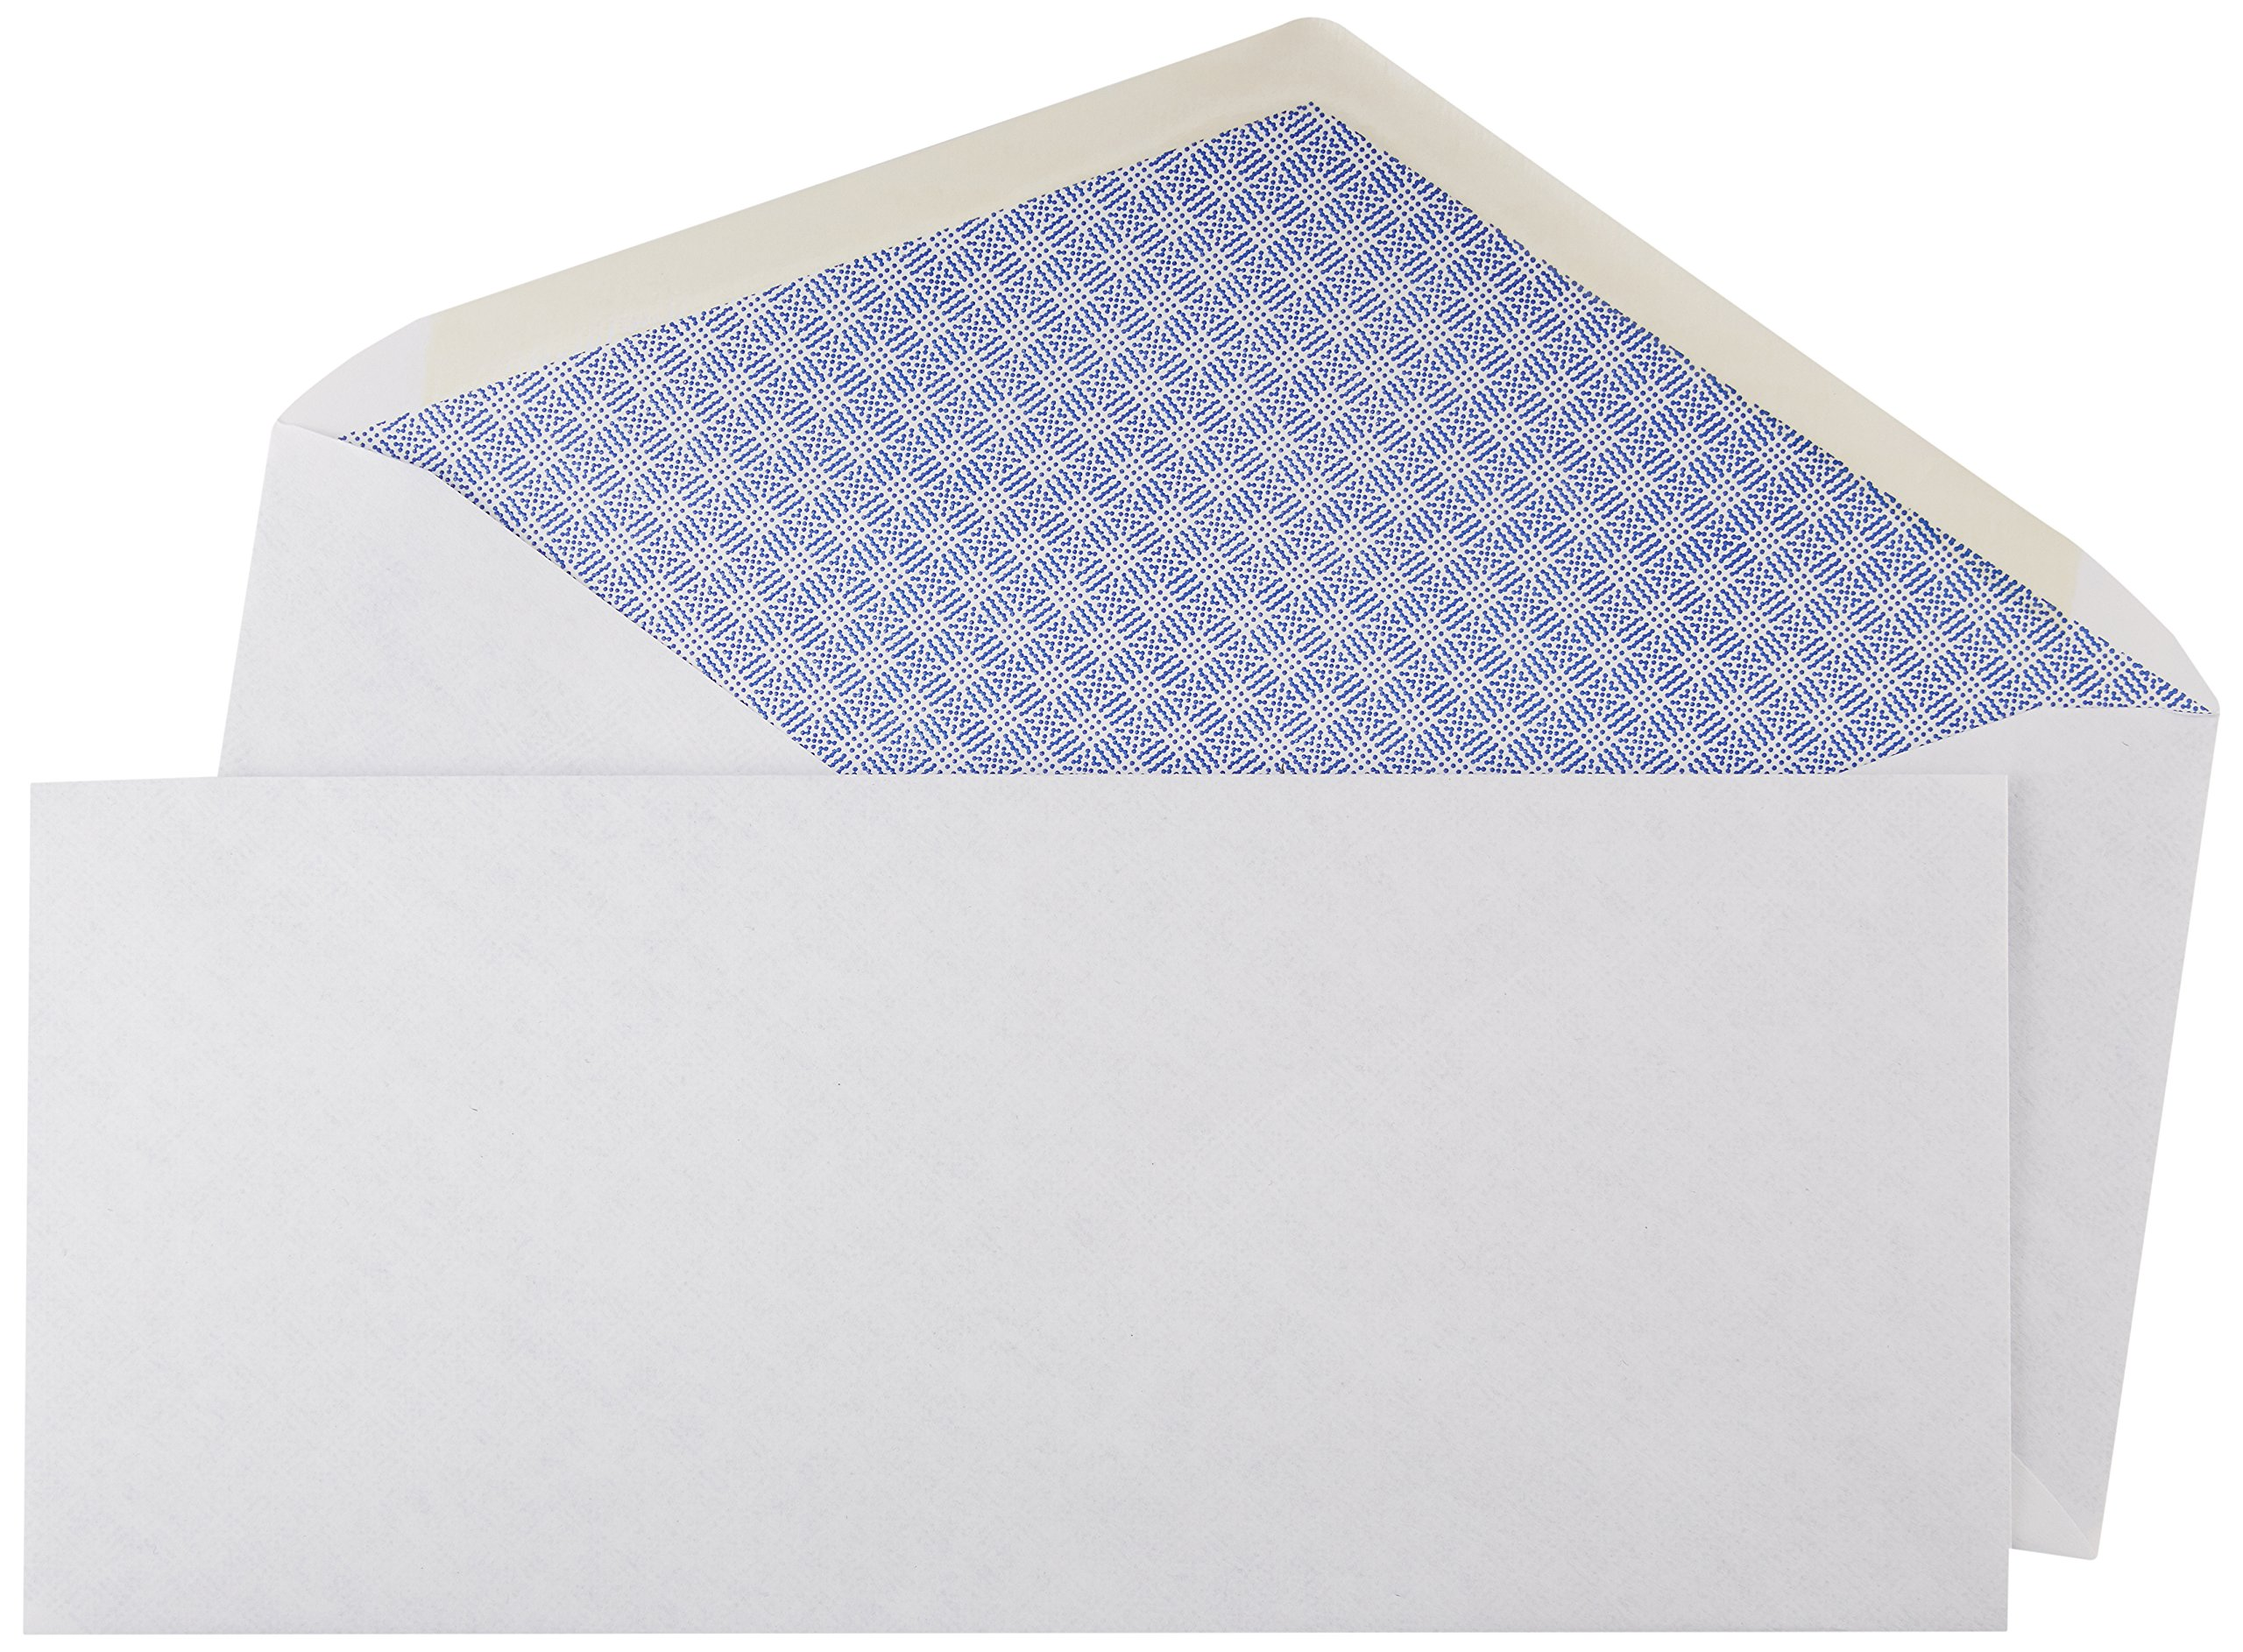 AmazonBasics #10 Security Tinted Envelopes - 4 1/8-Inch x 9.5-Inch (500 Pack)